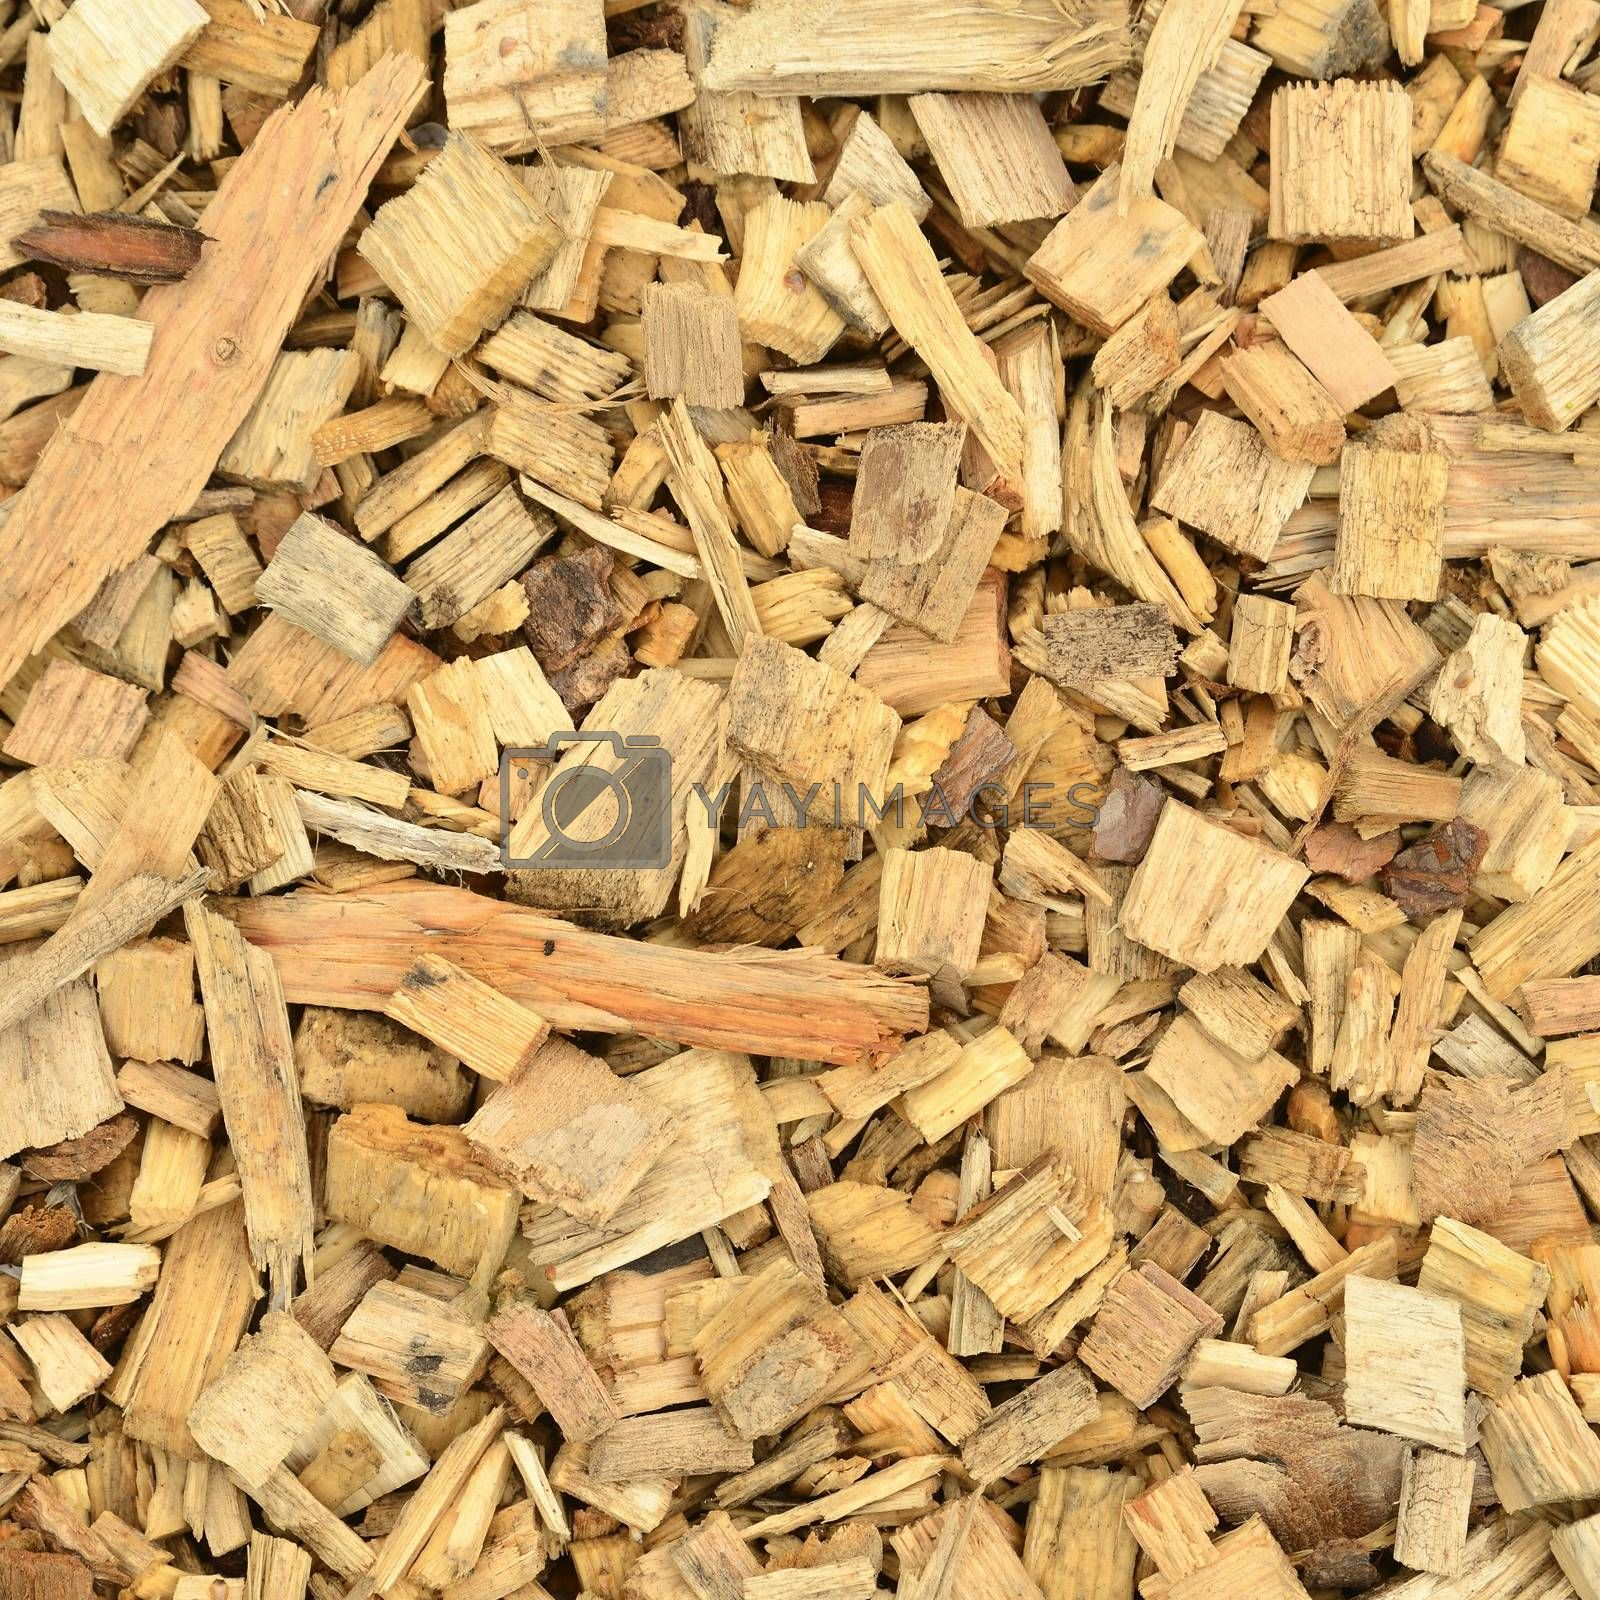 Close up of wood chip.